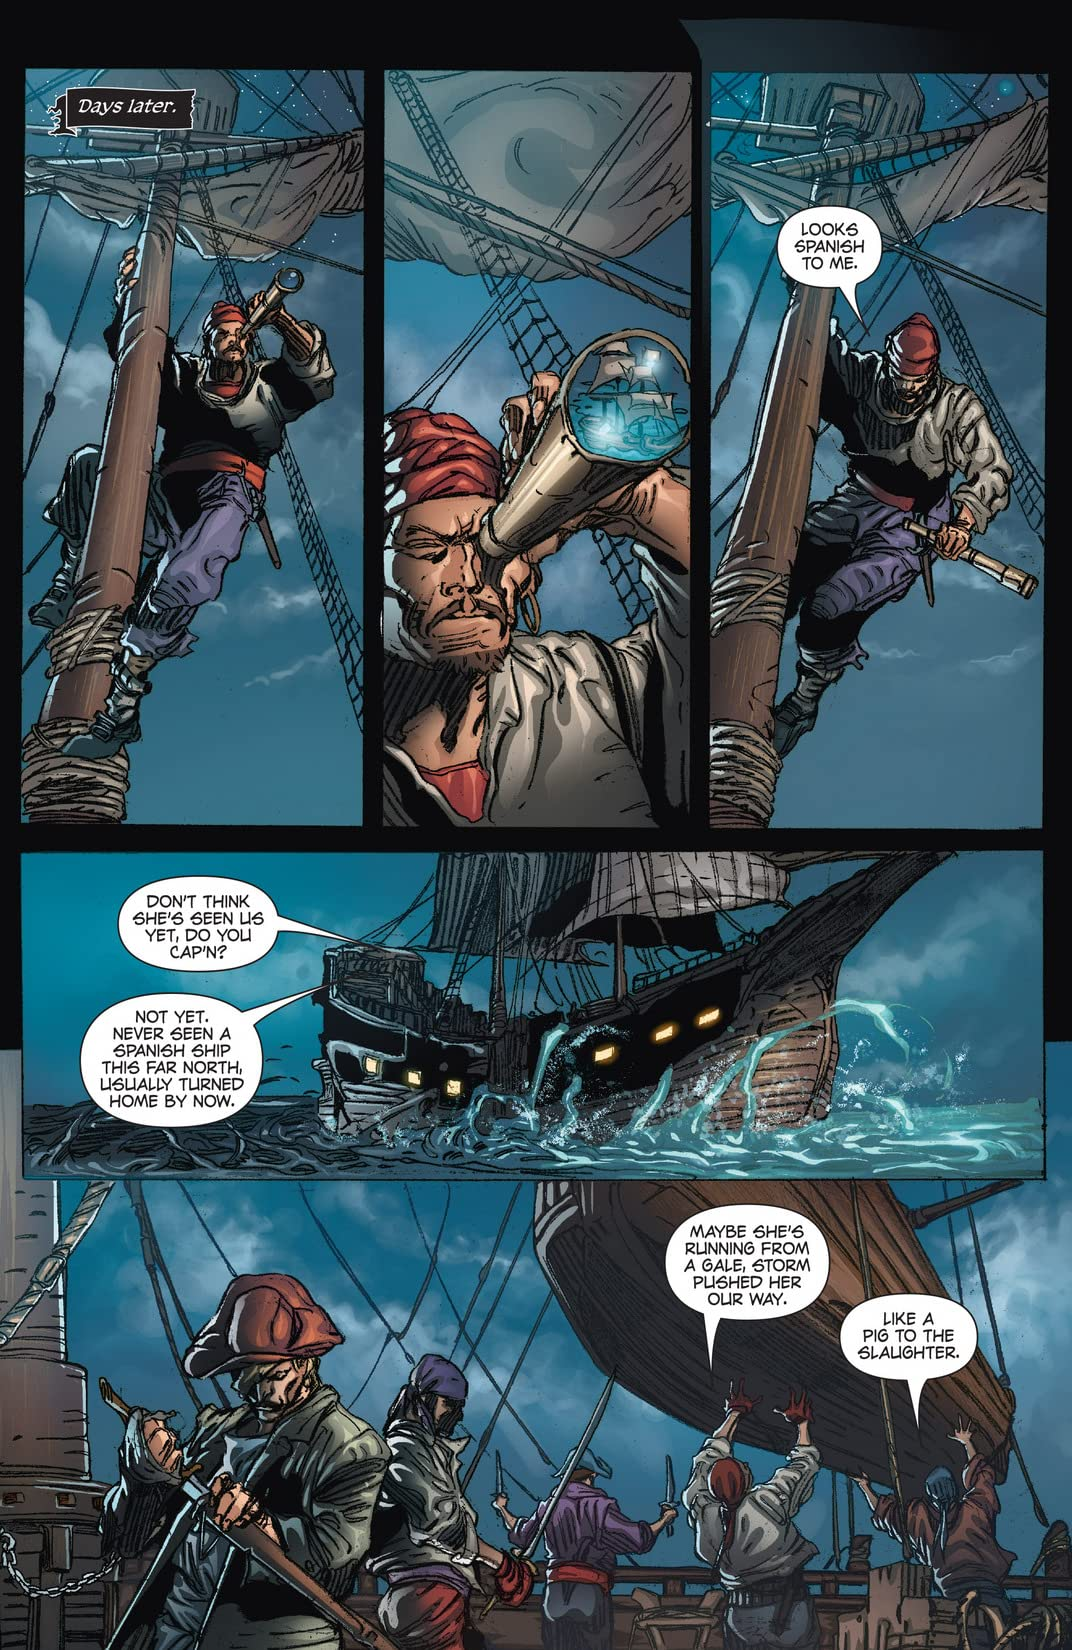 Blackbeard: Legend of the Pyrate King #3